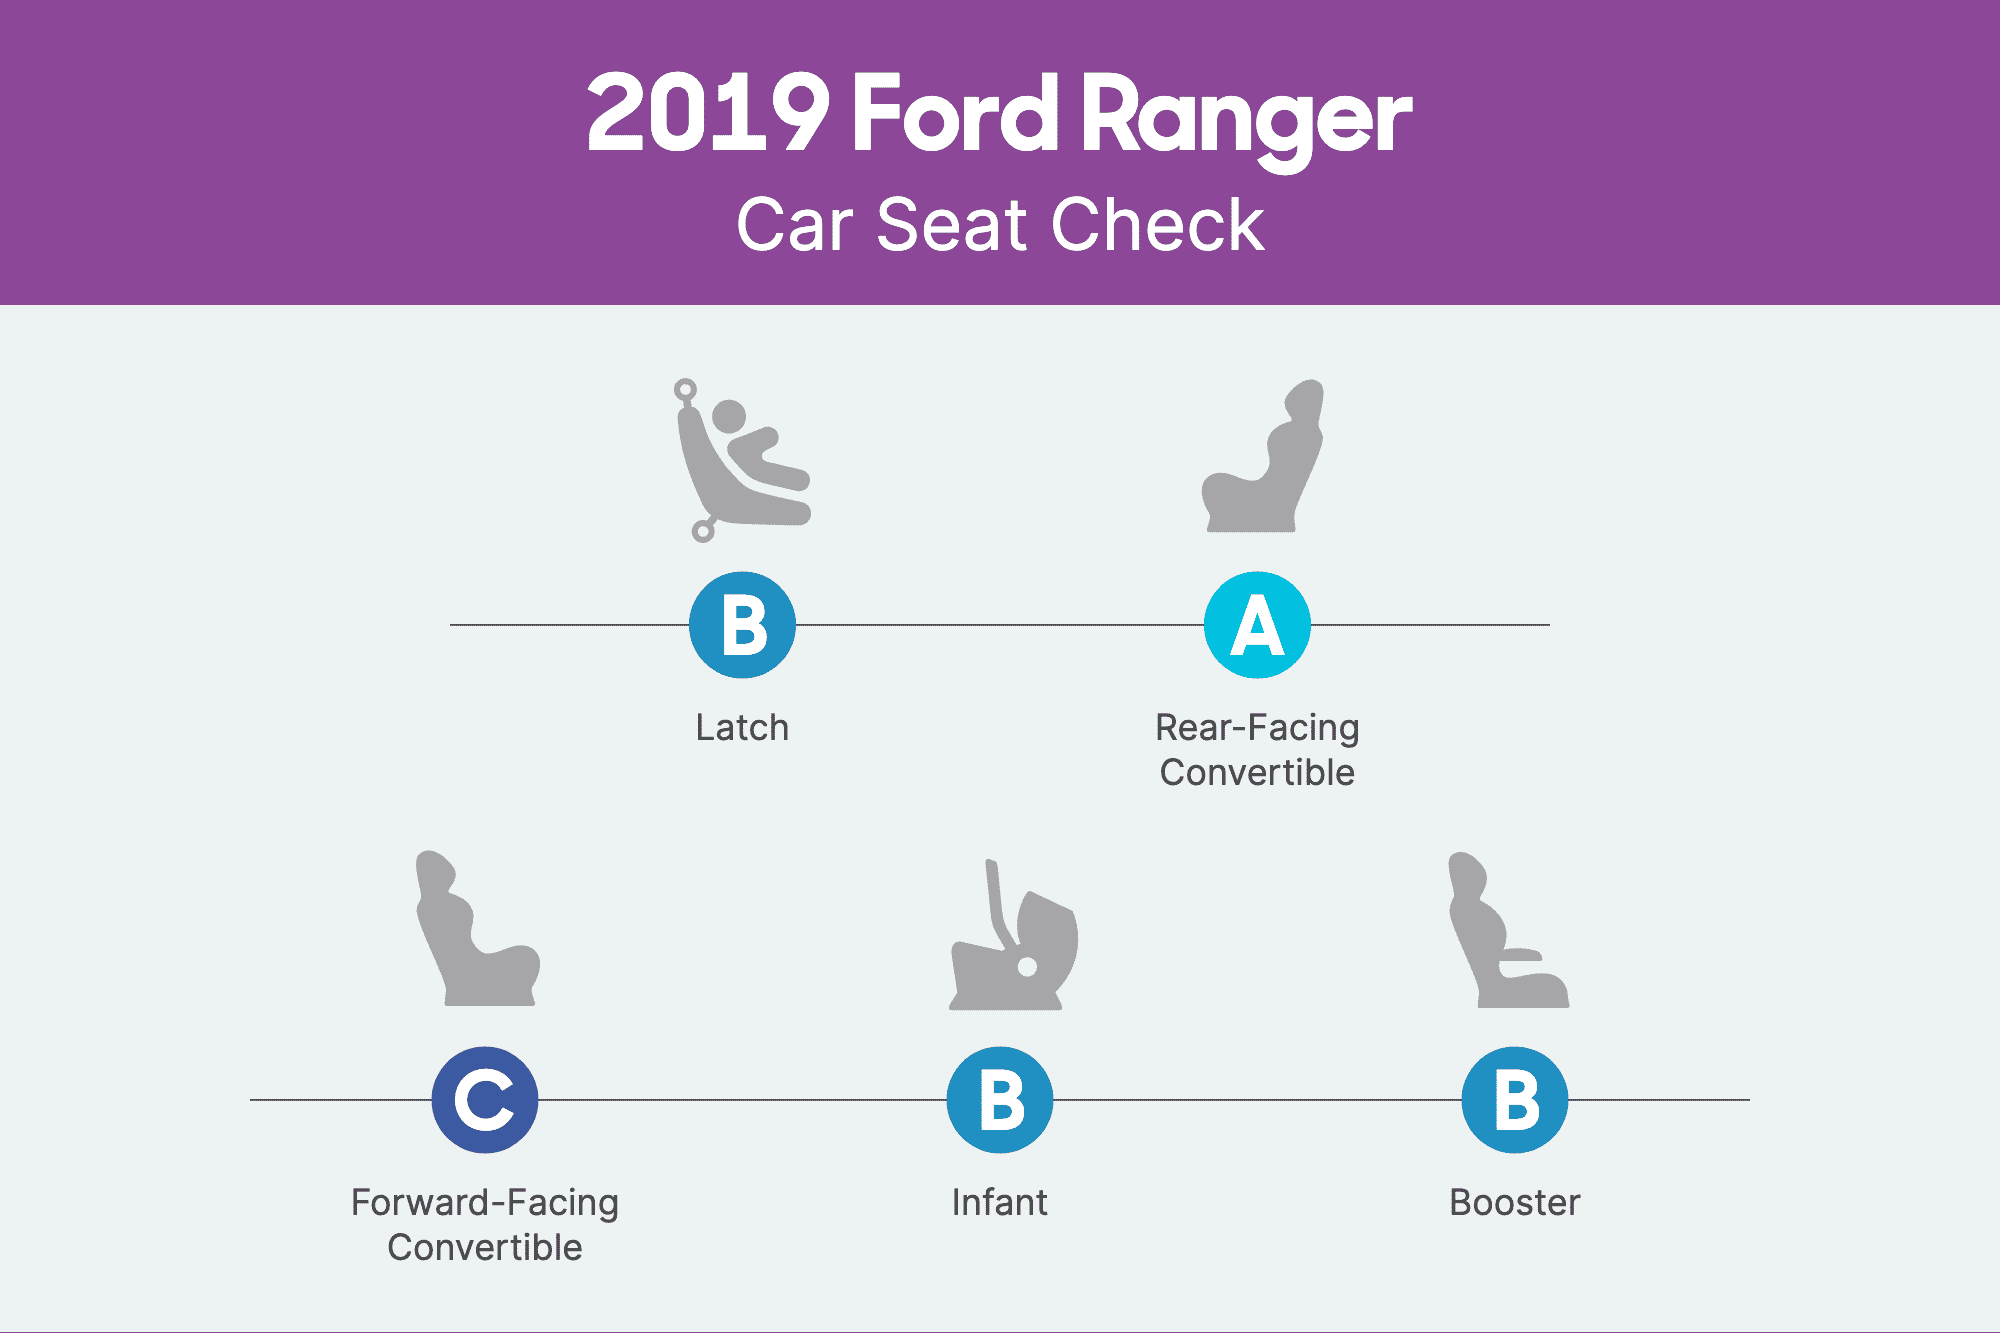 How Do Car Seats Fit in a 2019 Ford Ranger?